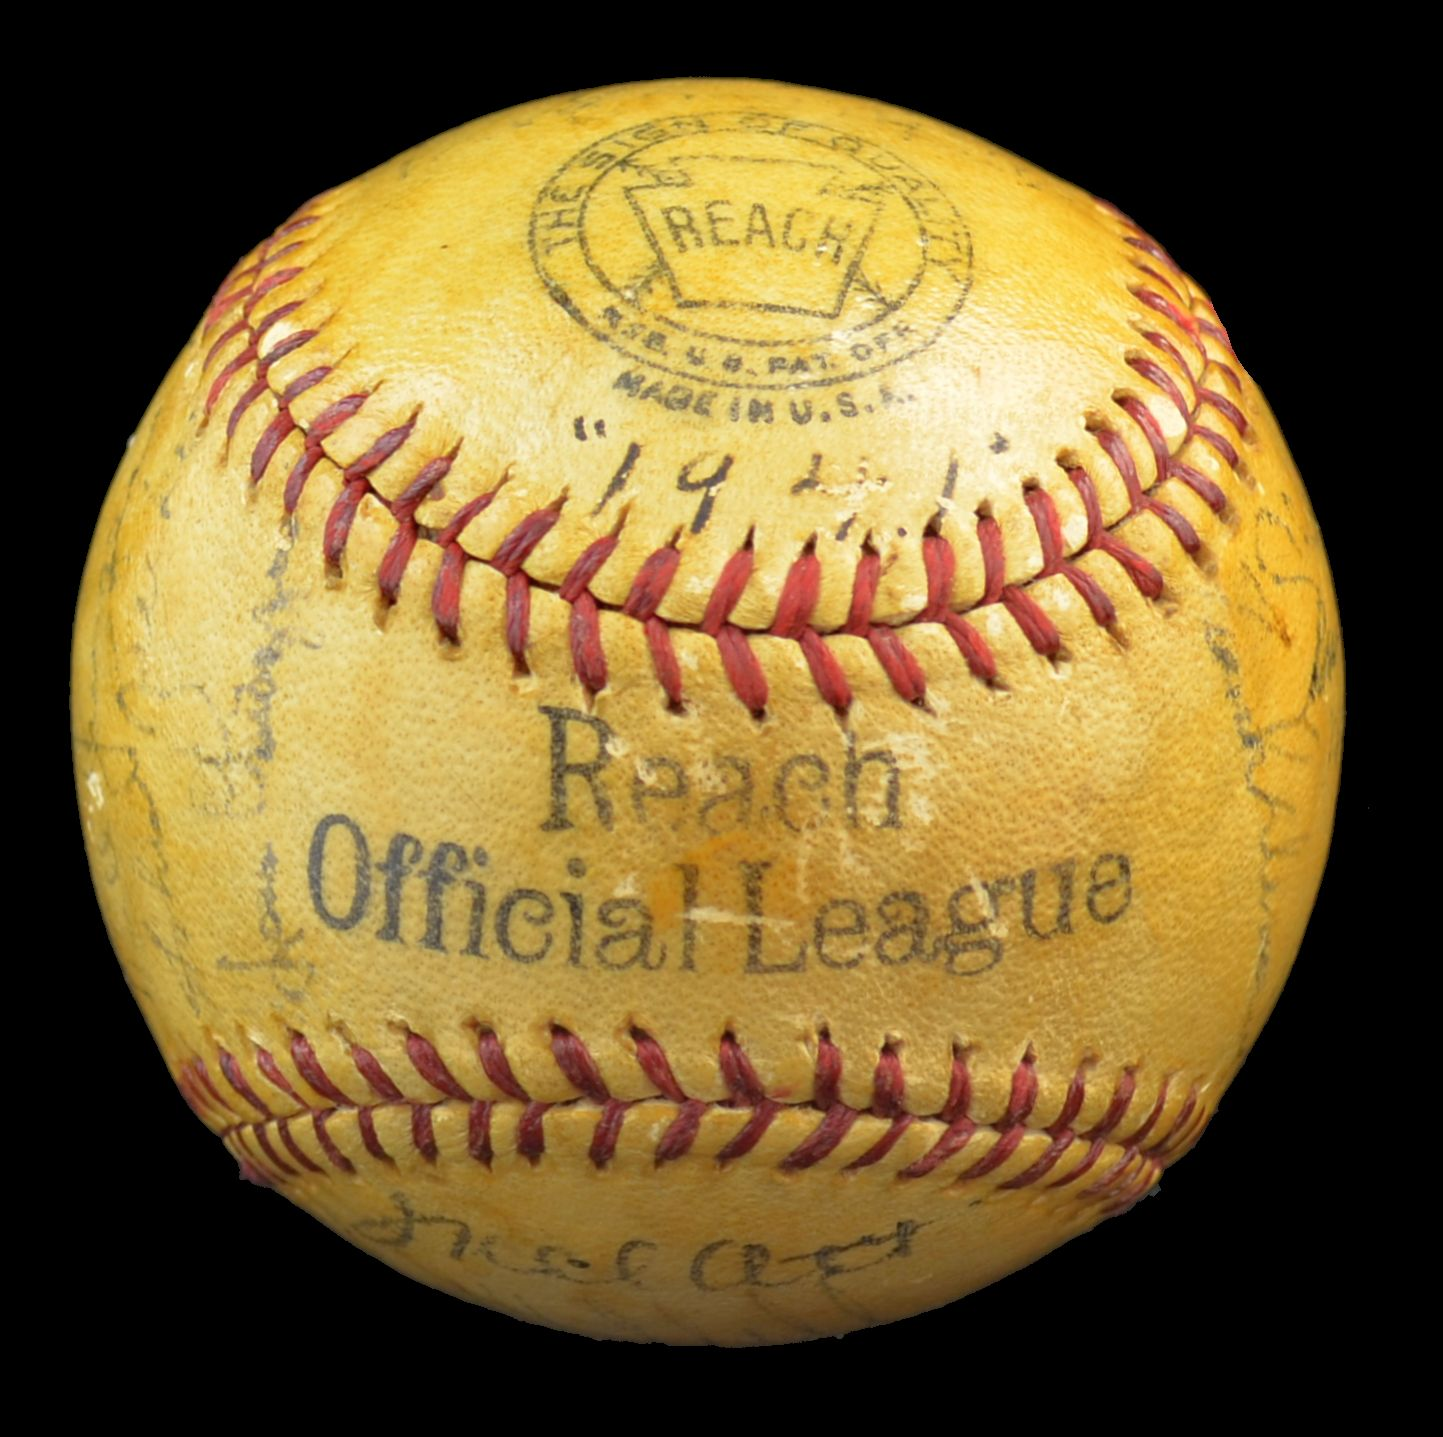 new york giants baseball rosters images